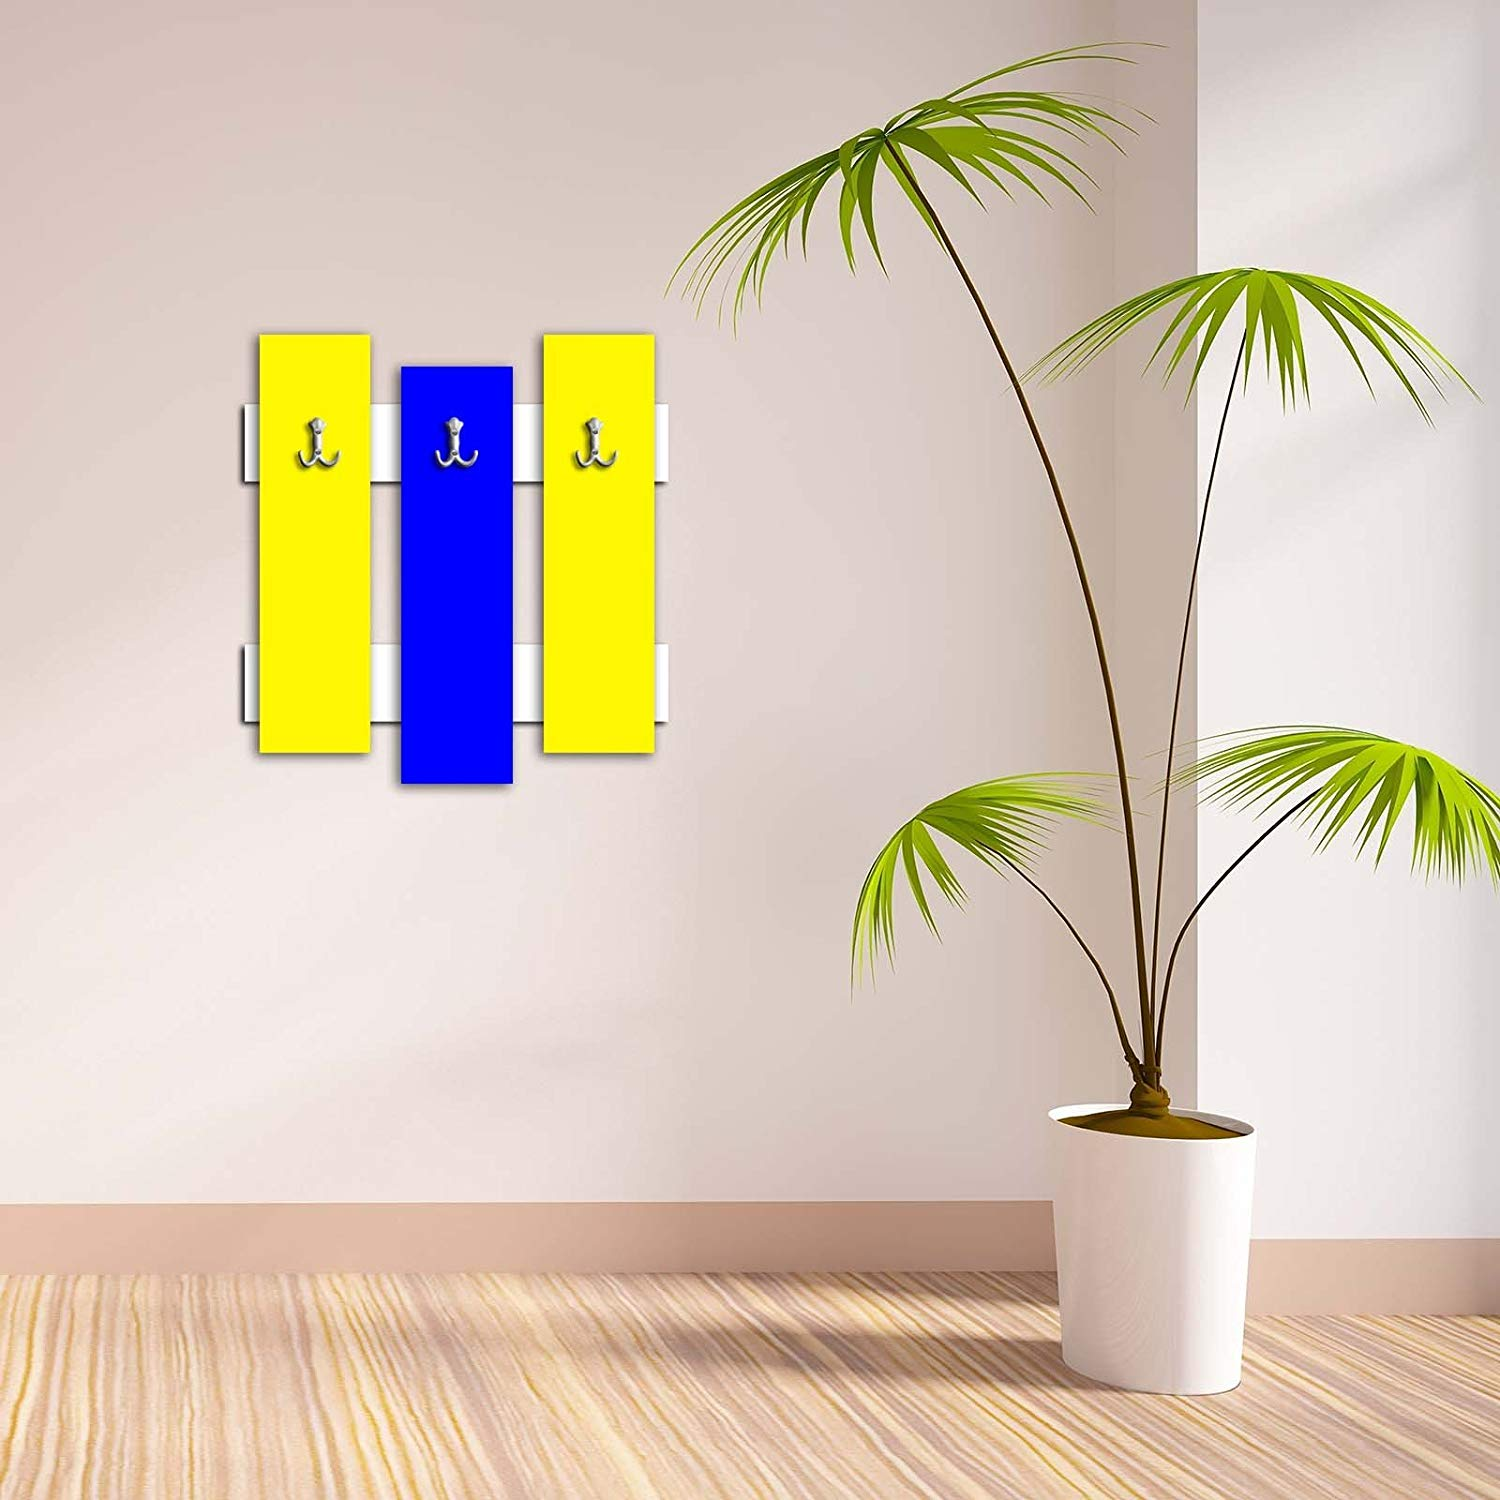 Decorative Wall Hook 3 Pcs Metal Key Holder 100% MDF Mounted Hanging Home Decor, Perfect for Foyers Entryway, Door Coats Hats Towels Scarfs Bags Red- Yellow Simple Pattern Design Basic Plain